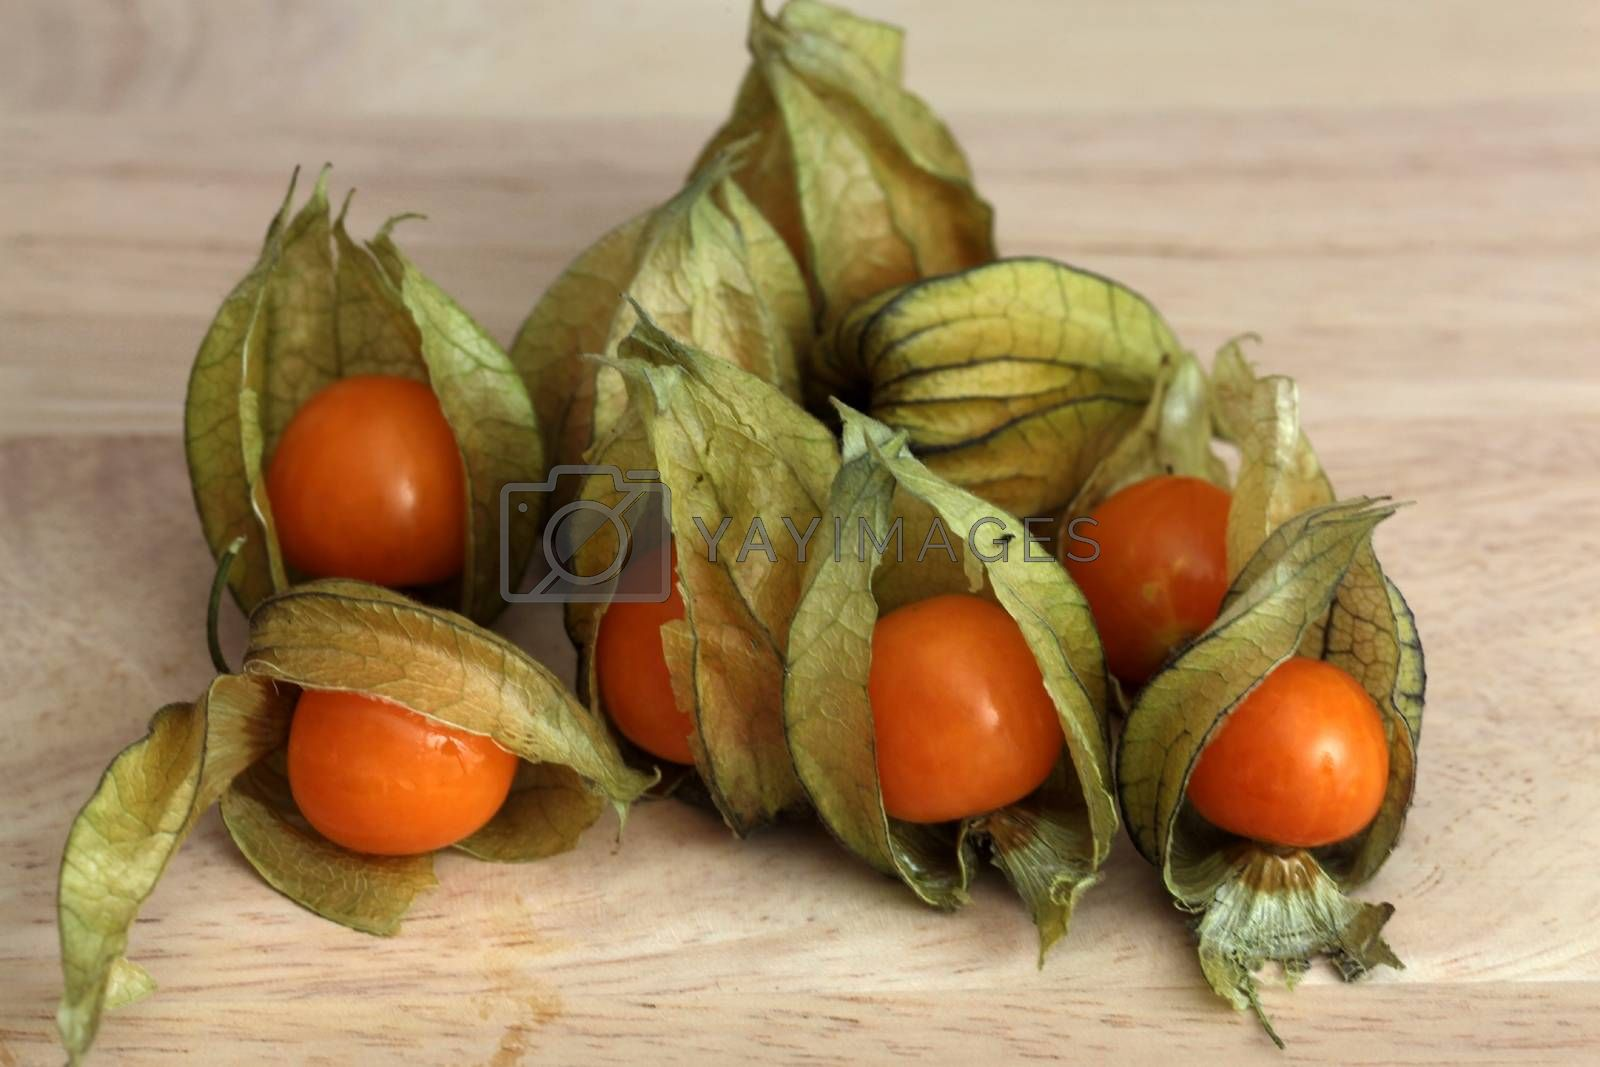 Macro photograph of Physalis peruviana.